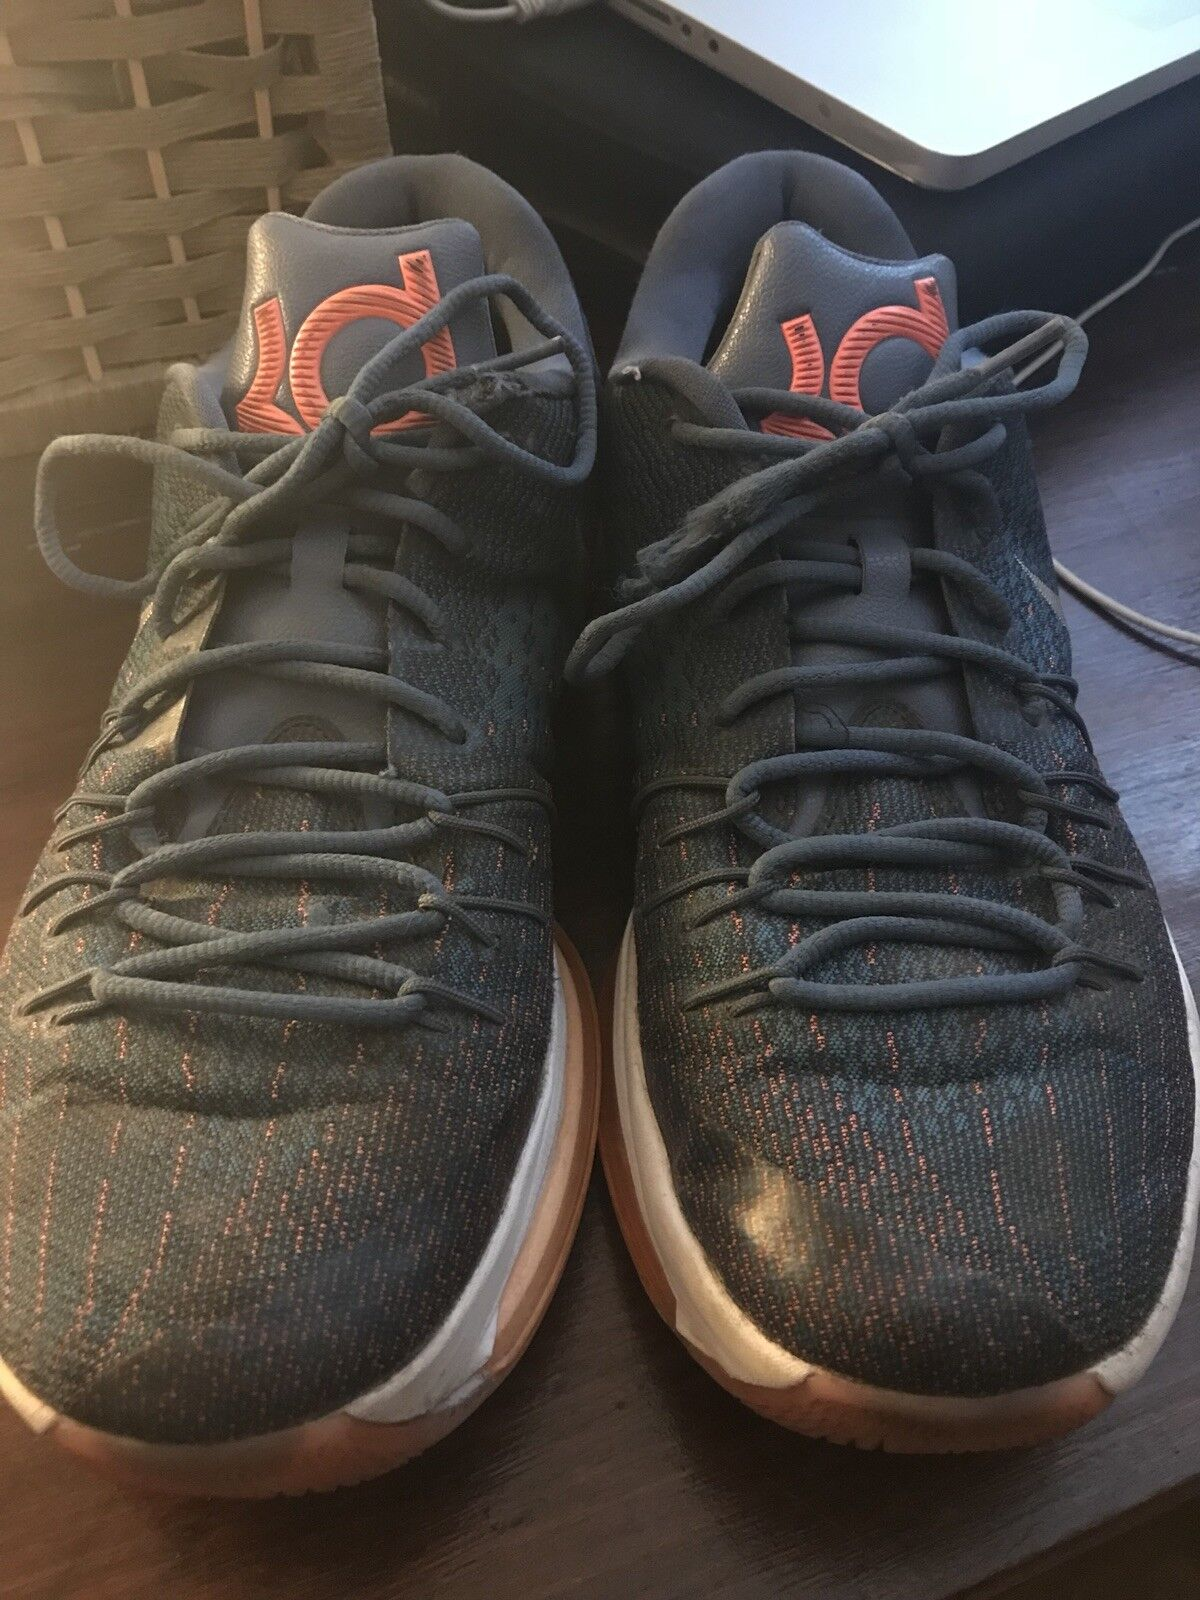 NIKE KD 8 MENS SHOES SIZE 12 Pre-owned 749375 414